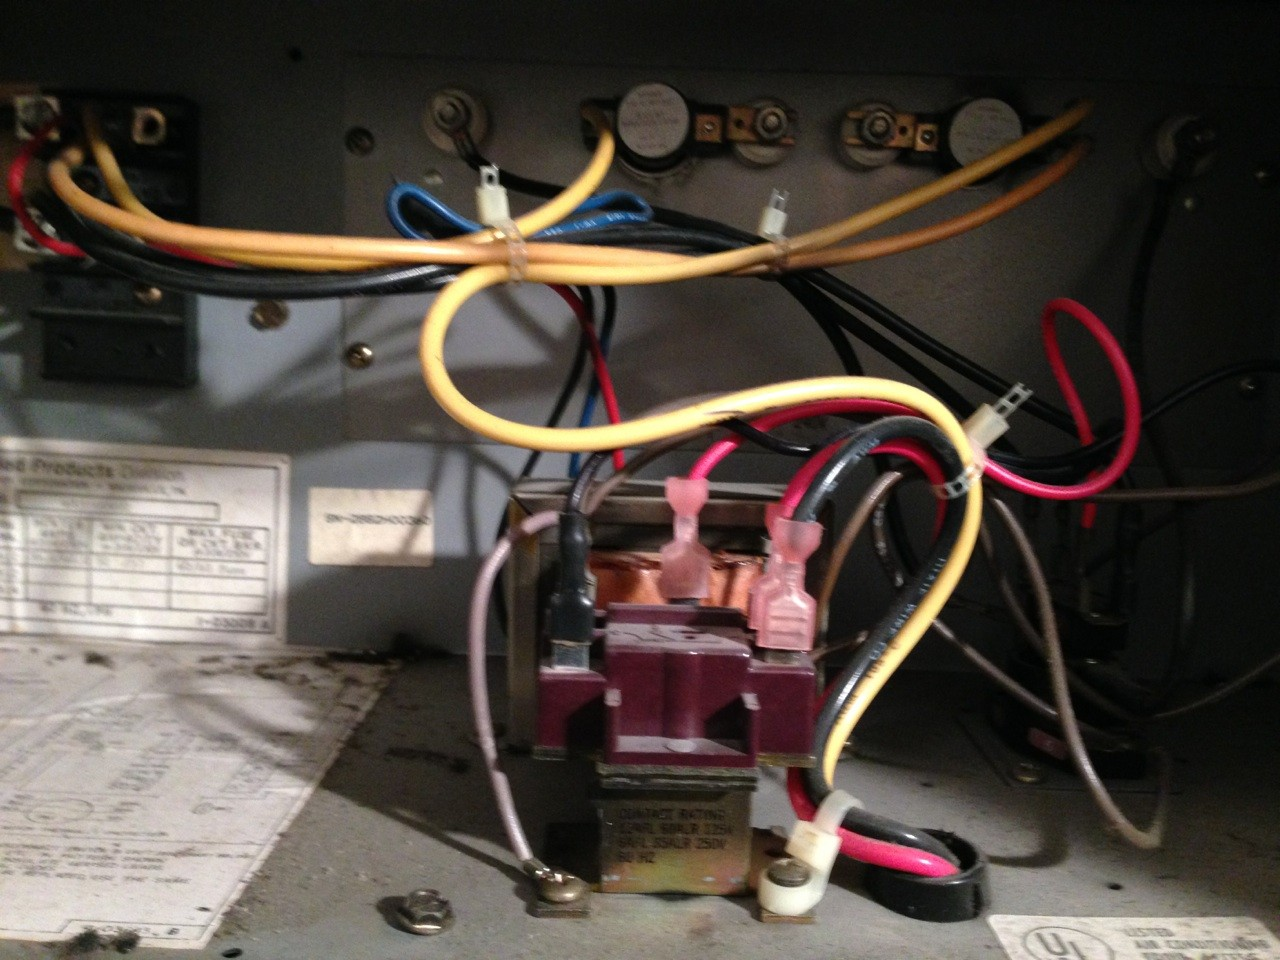 Carrier 40qb042300 Air Handler Not Responding  Any Easy Places To Check Like Fuses  Etc